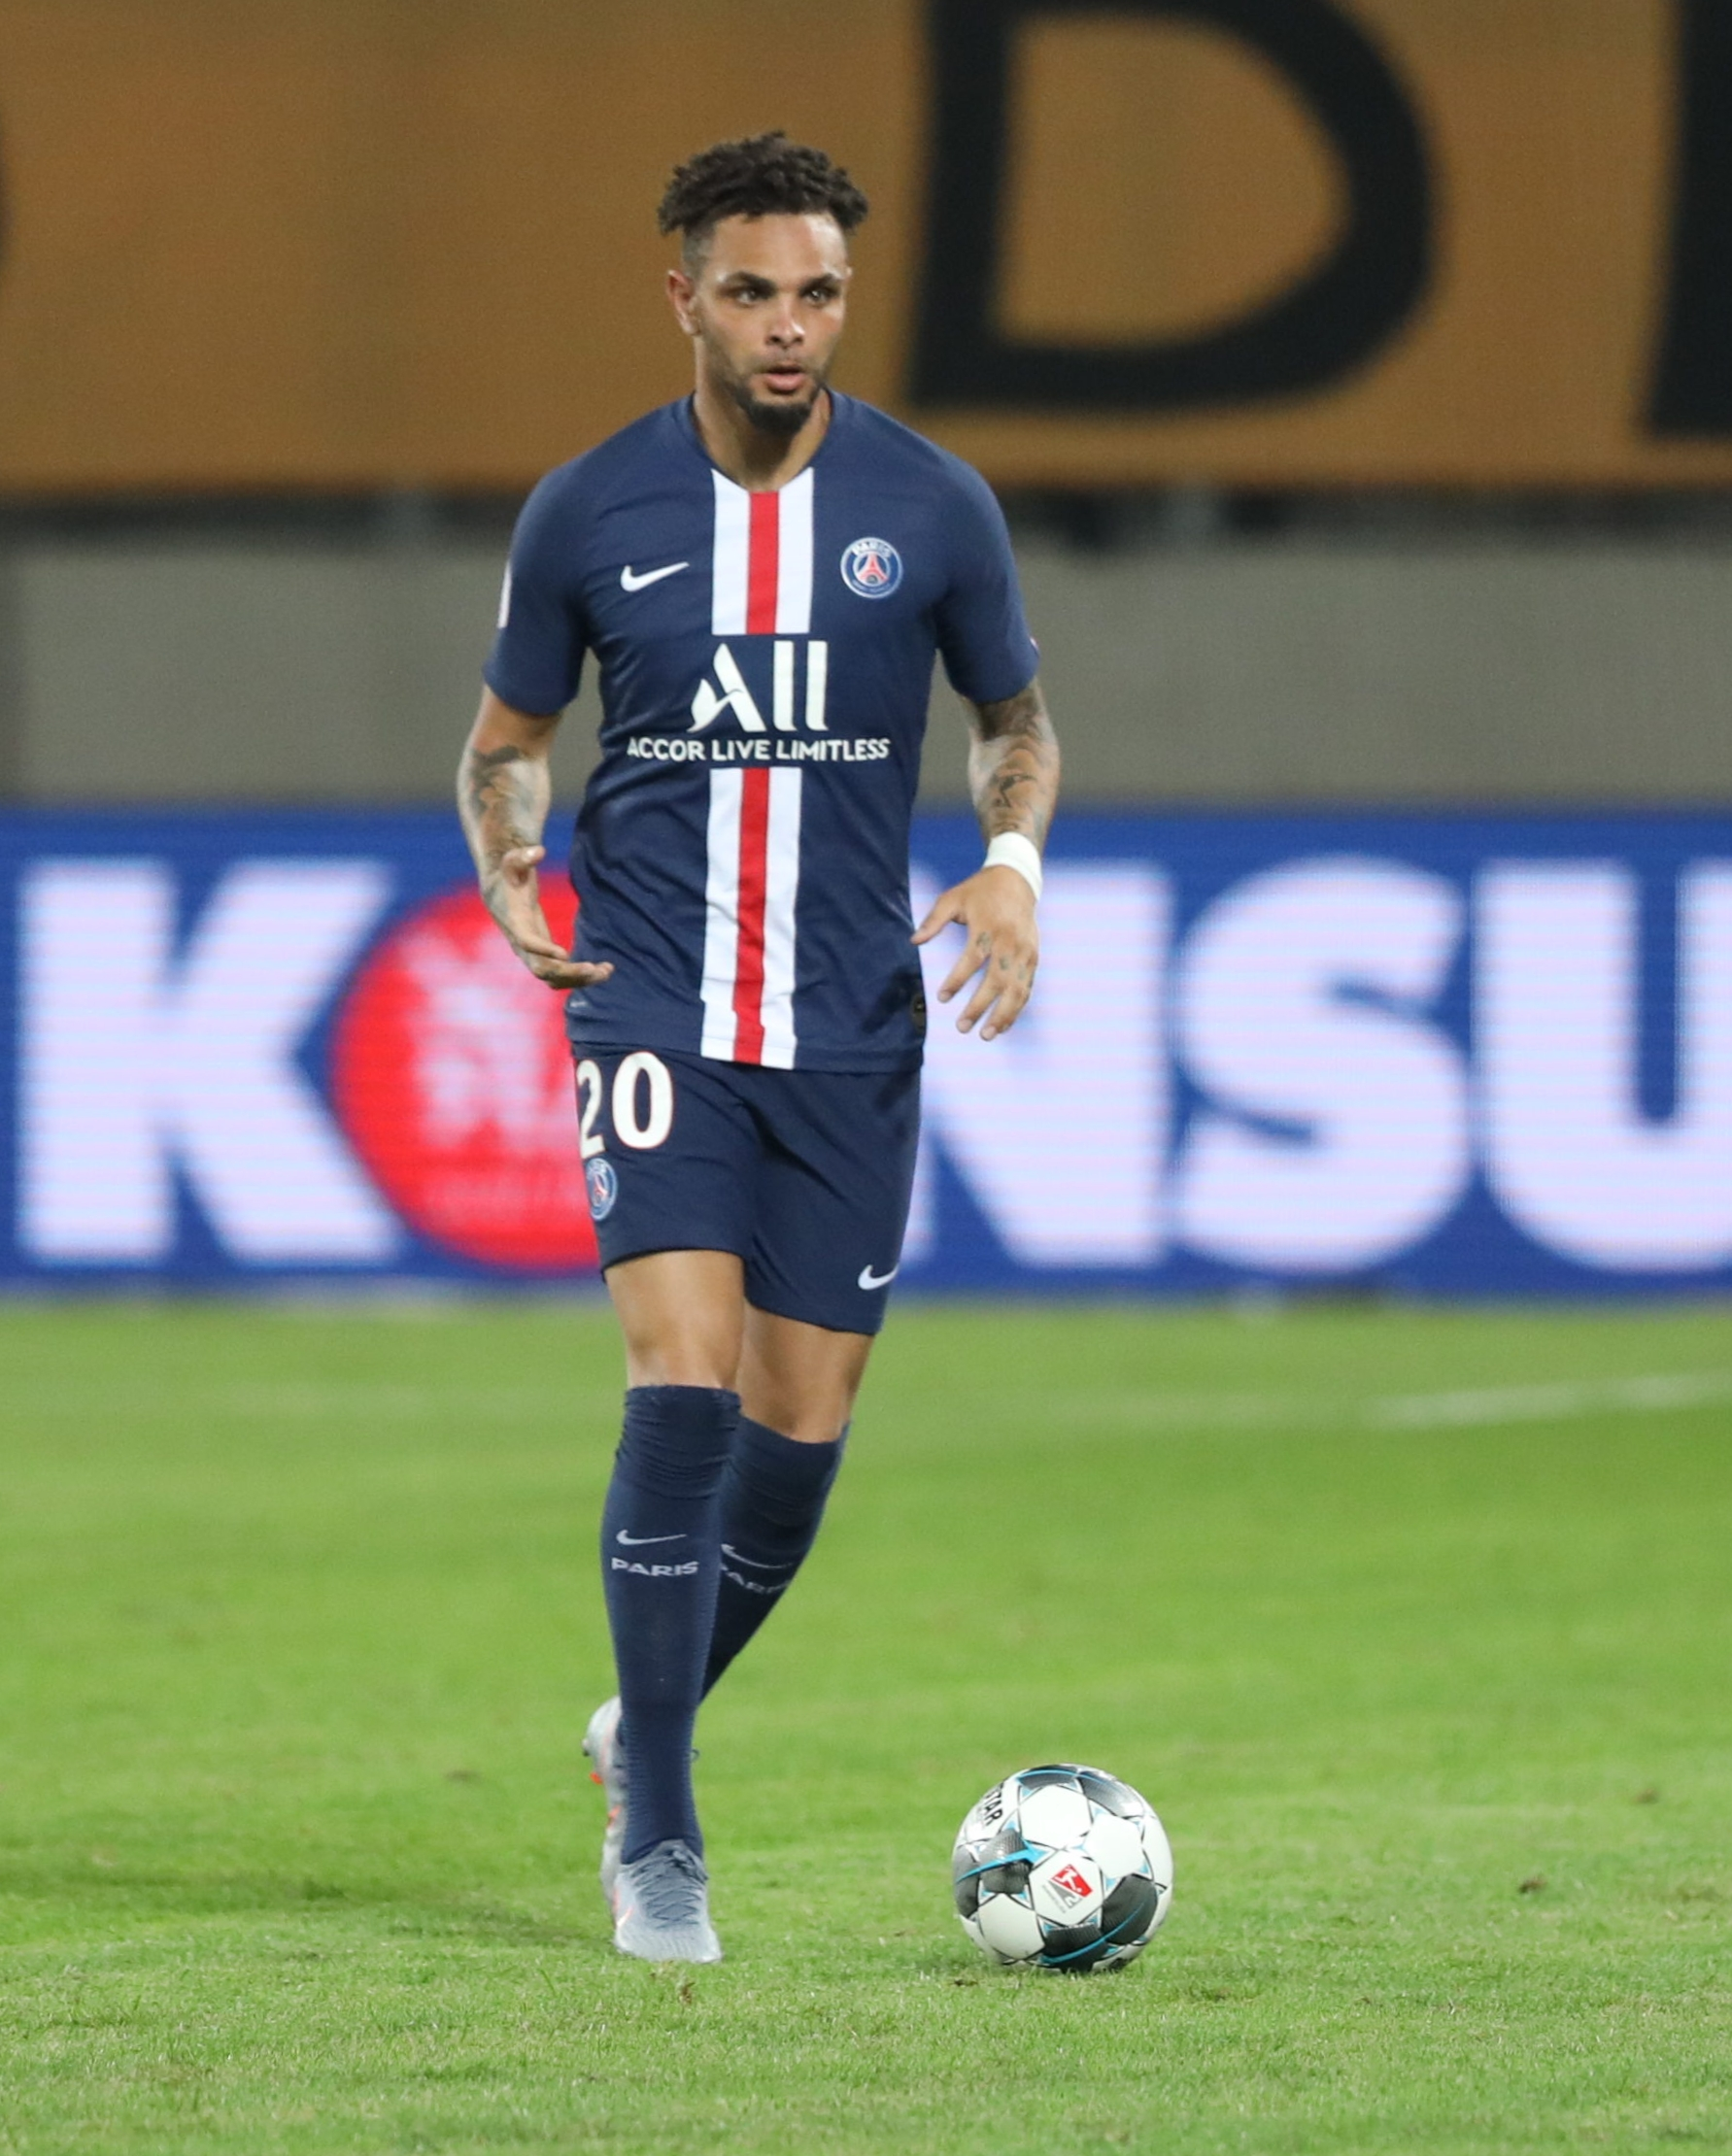 layvin kurzawa wikipedia ligue 1 winner ligue 1 c 18 #15